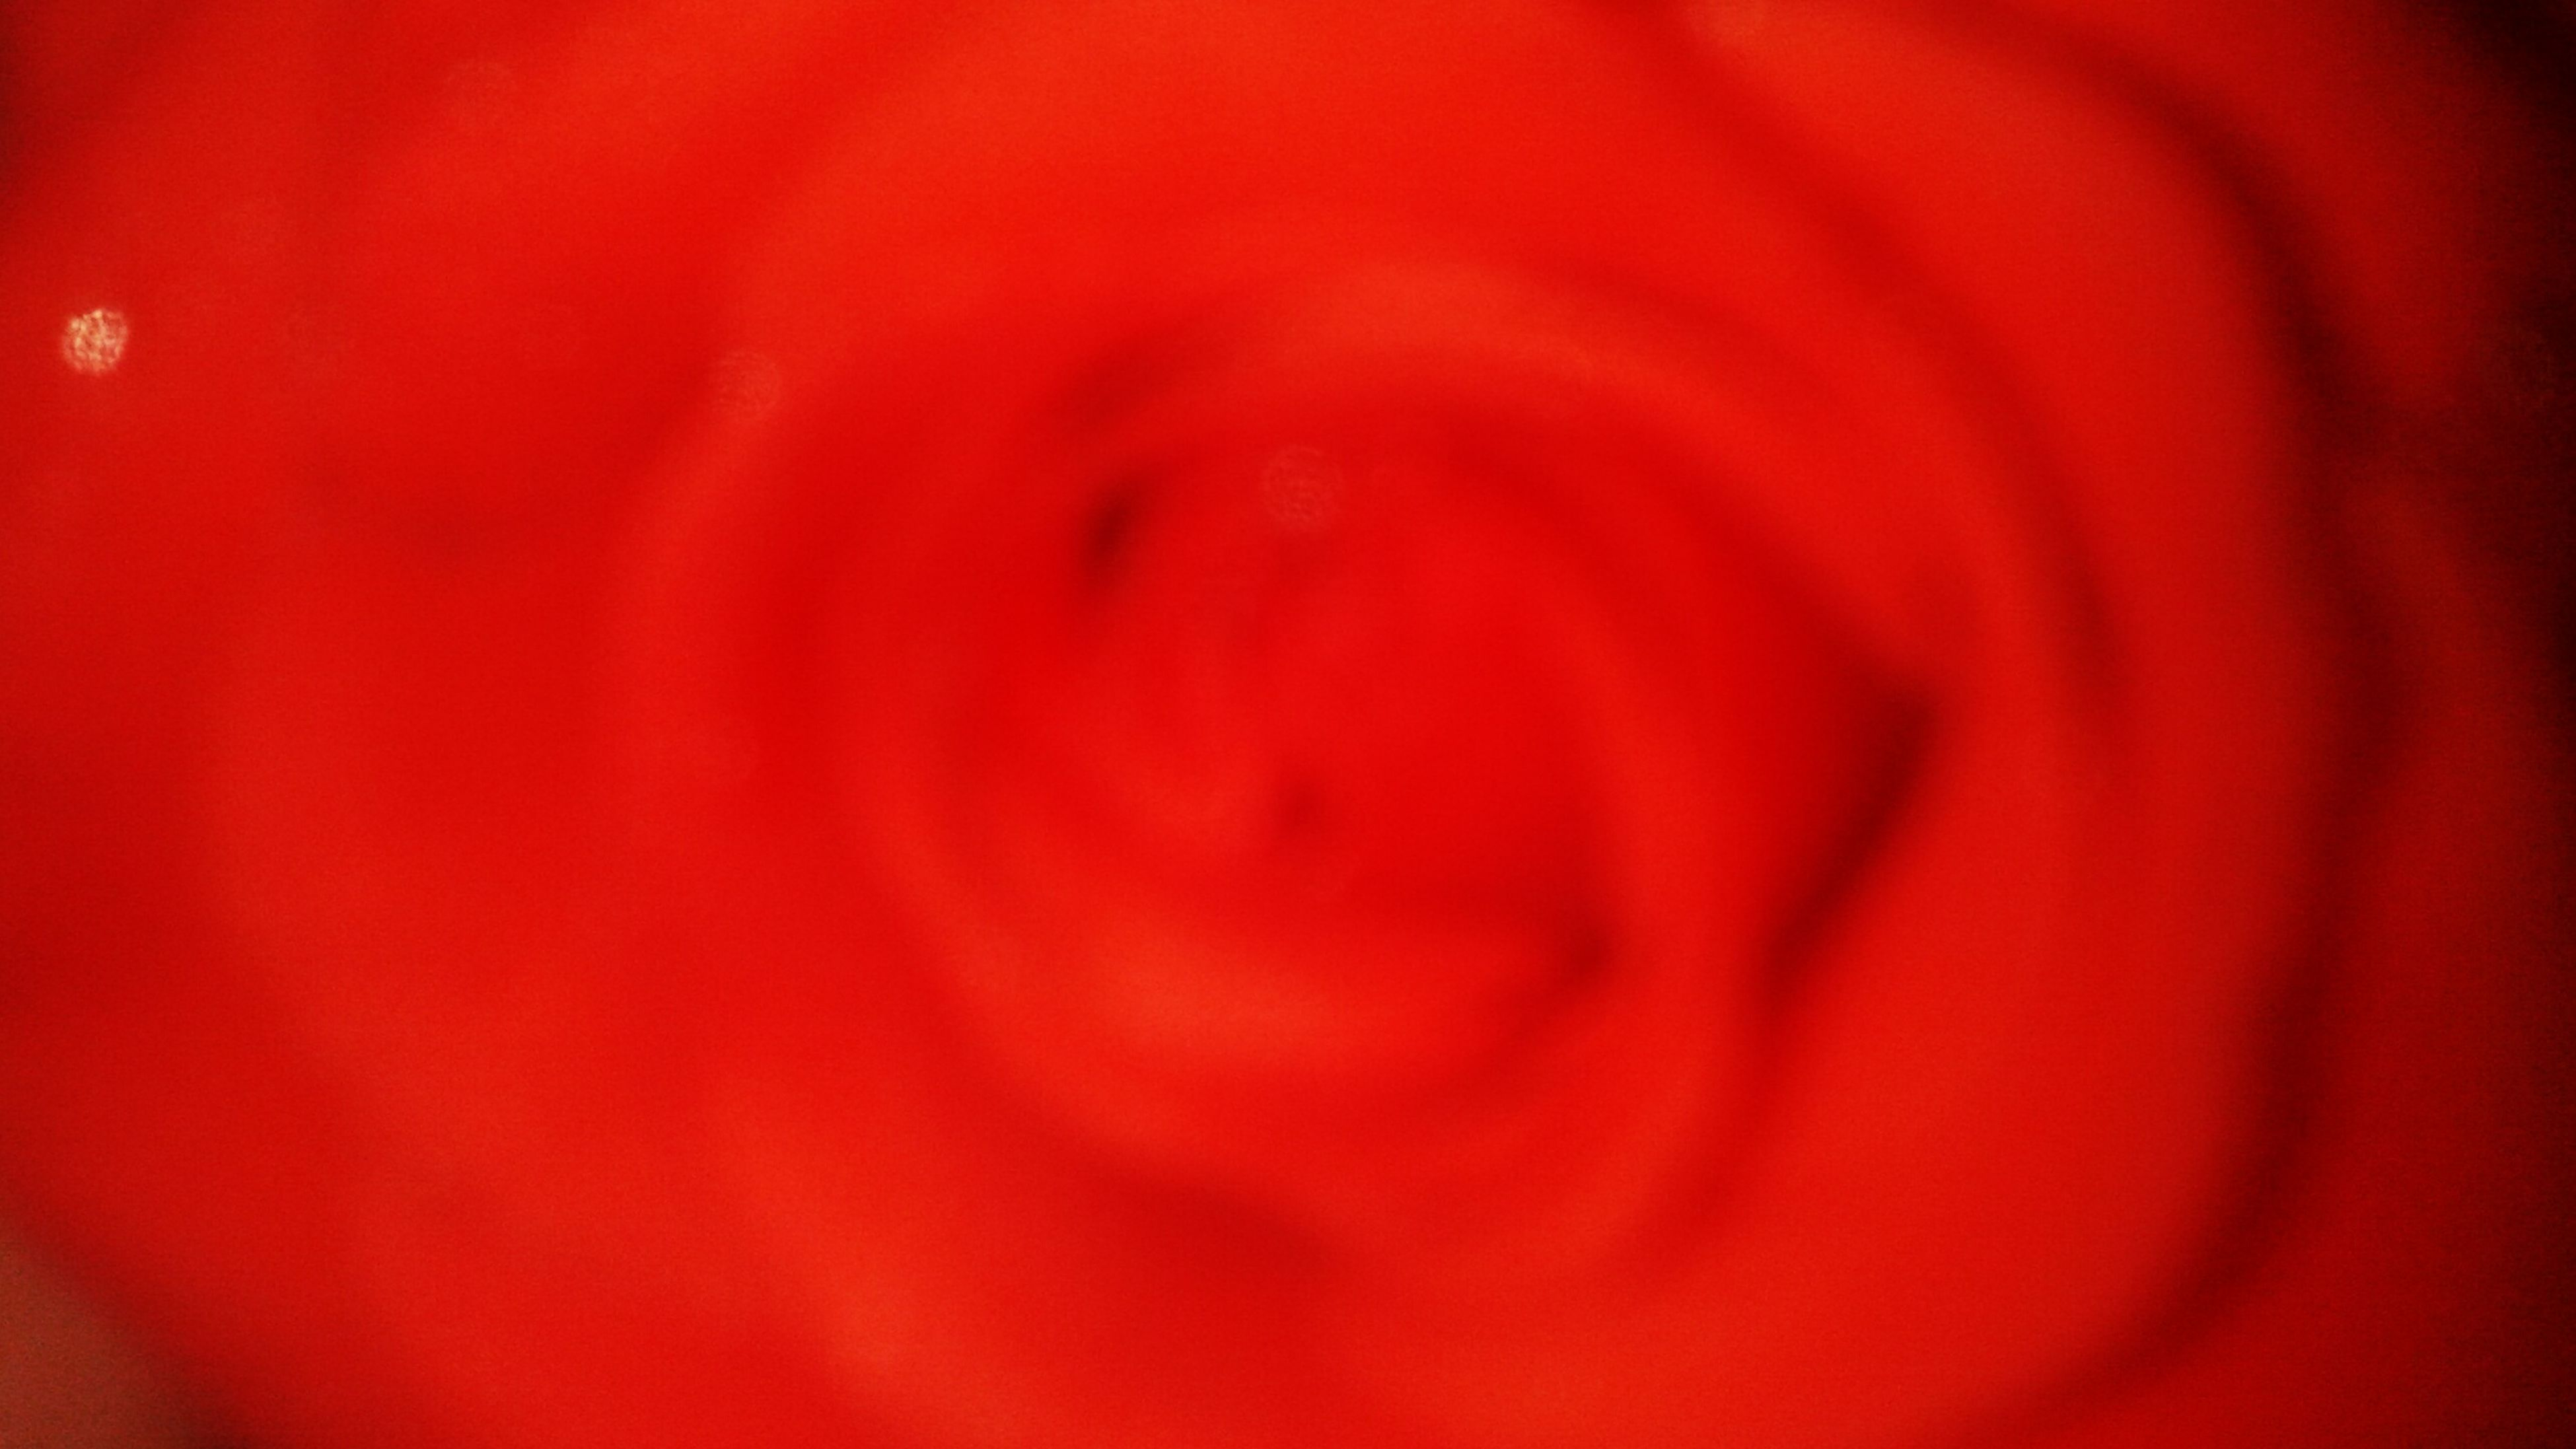 red, petal, flower, flower head, full frame, backgrounds, freshness, fragility, beauty in nature, close-up, single flower, nature, extreme close-up, macro, growth, pink color, vibrant color, no people, selective focus, rose - flower